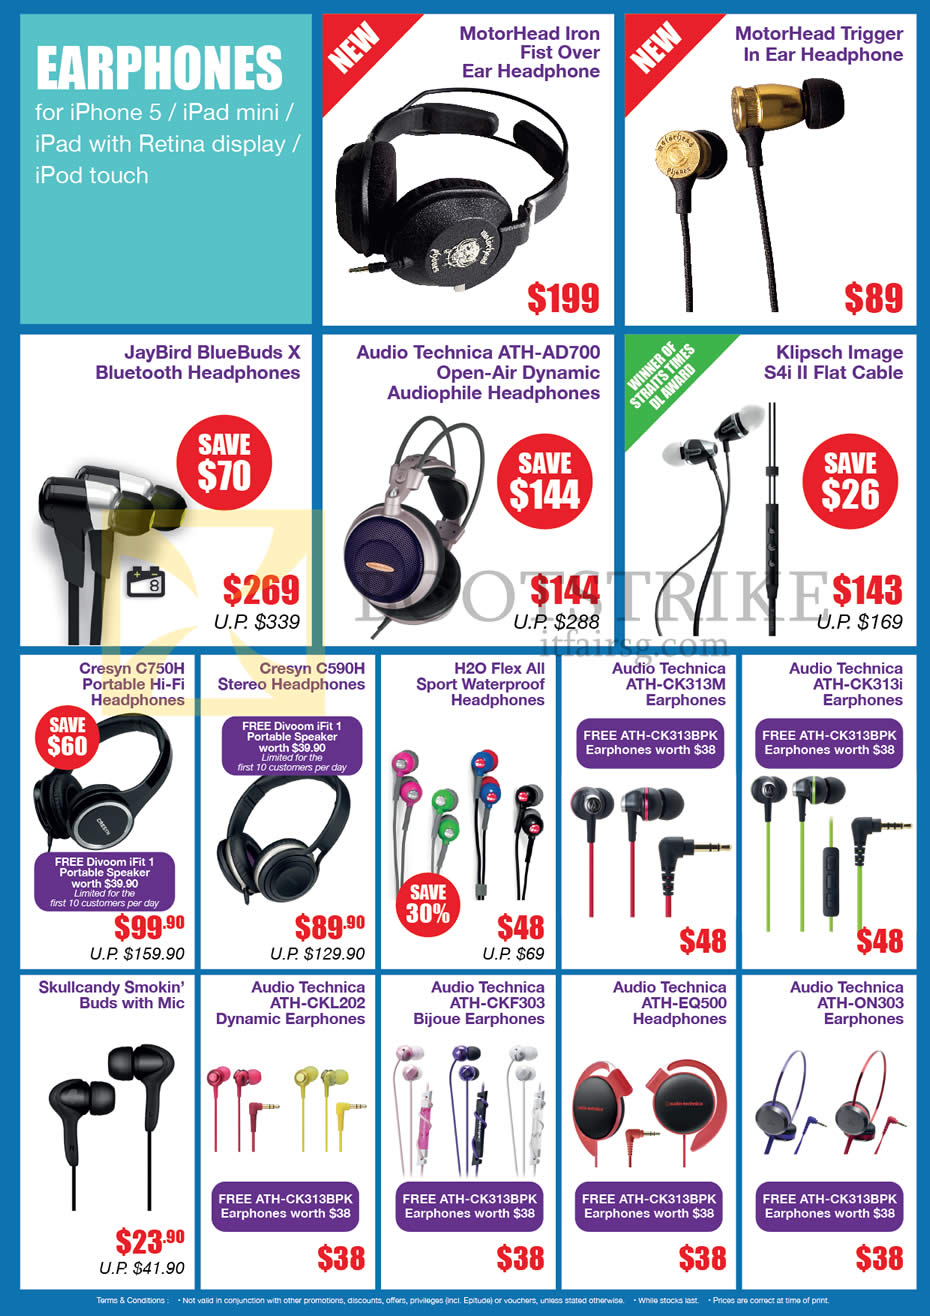 IT SHOW 2013 price list image brochure of EpiCentre Earphones Headphones MotorHead, JayBird BlueBuds X, Audio Technica ATH-AD700 CKL202 CKF303 EQ500 ON303, Klipsch S4i II, Cresyn, Skullcandy Smokin